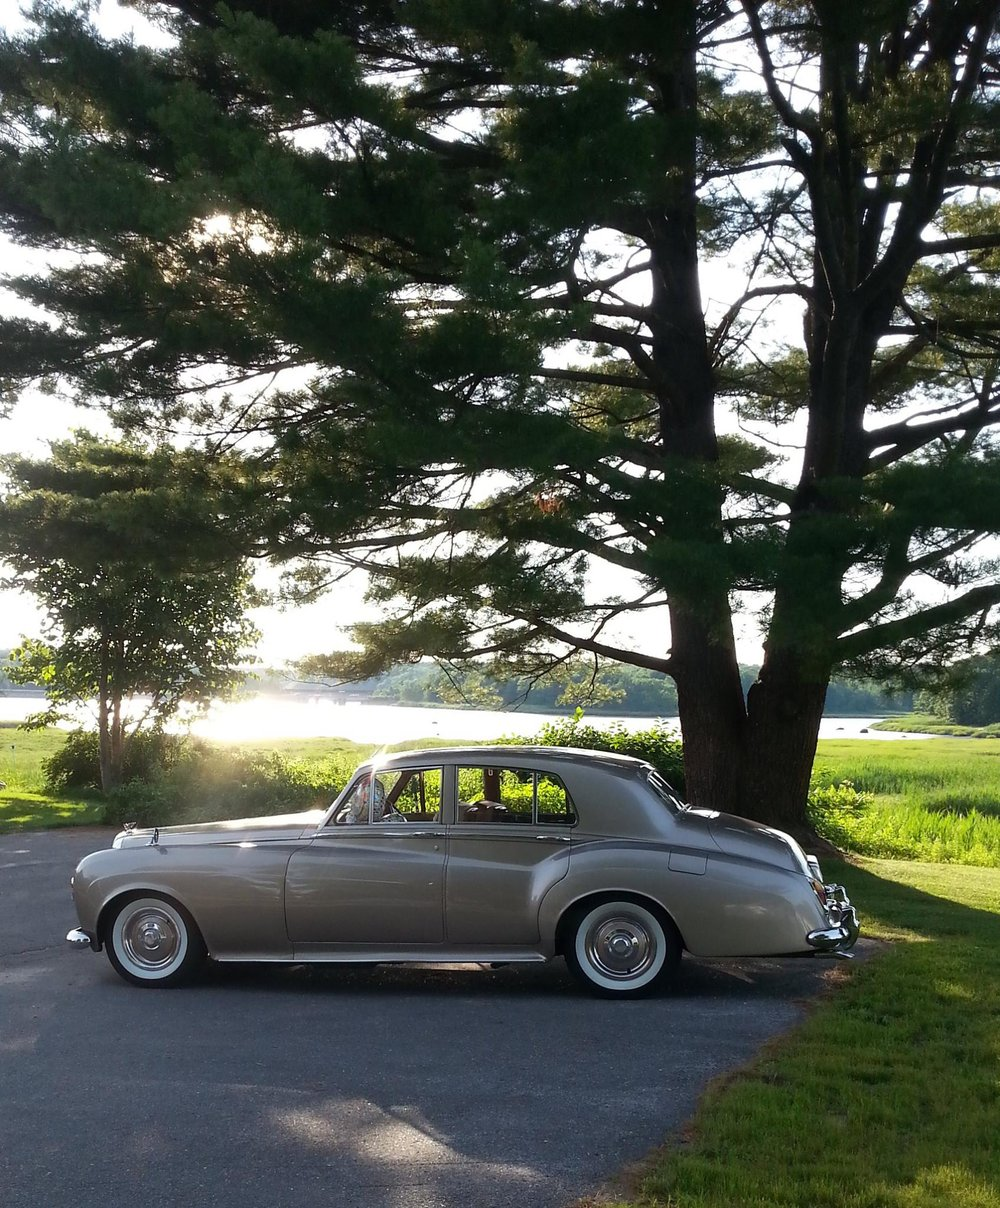 bentley from maine limousine parked under tree